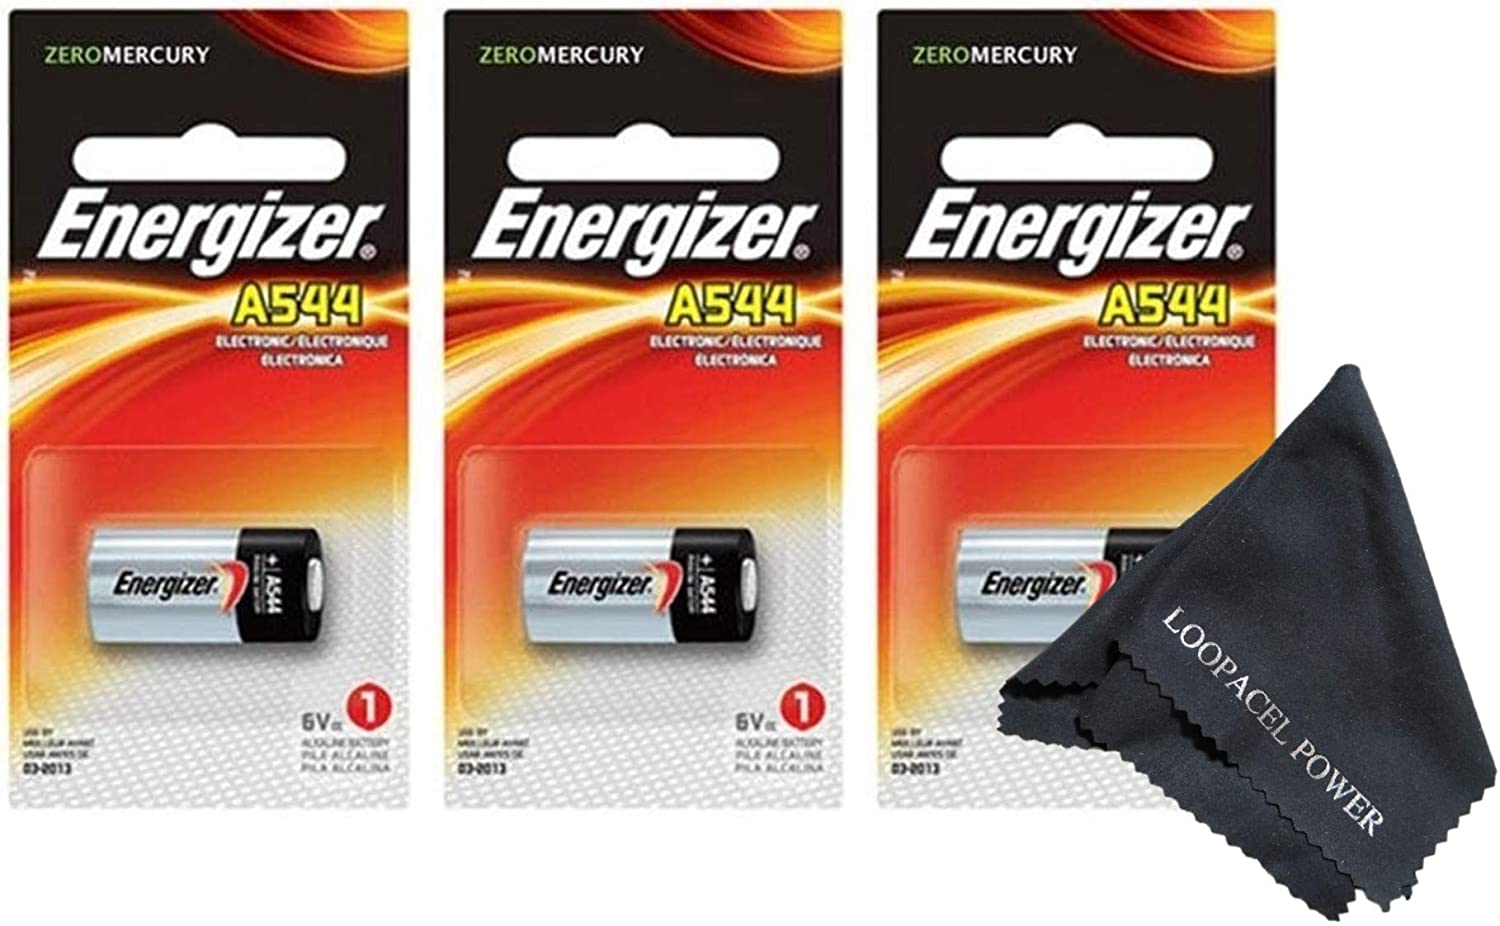 Energizer A544 6-Volt Photo Battery 3 Pack With Cloth - With Loopacell Brand Microfiber Cleaning Cloth Ultra Smooth, Colors May Vary : Health & Household